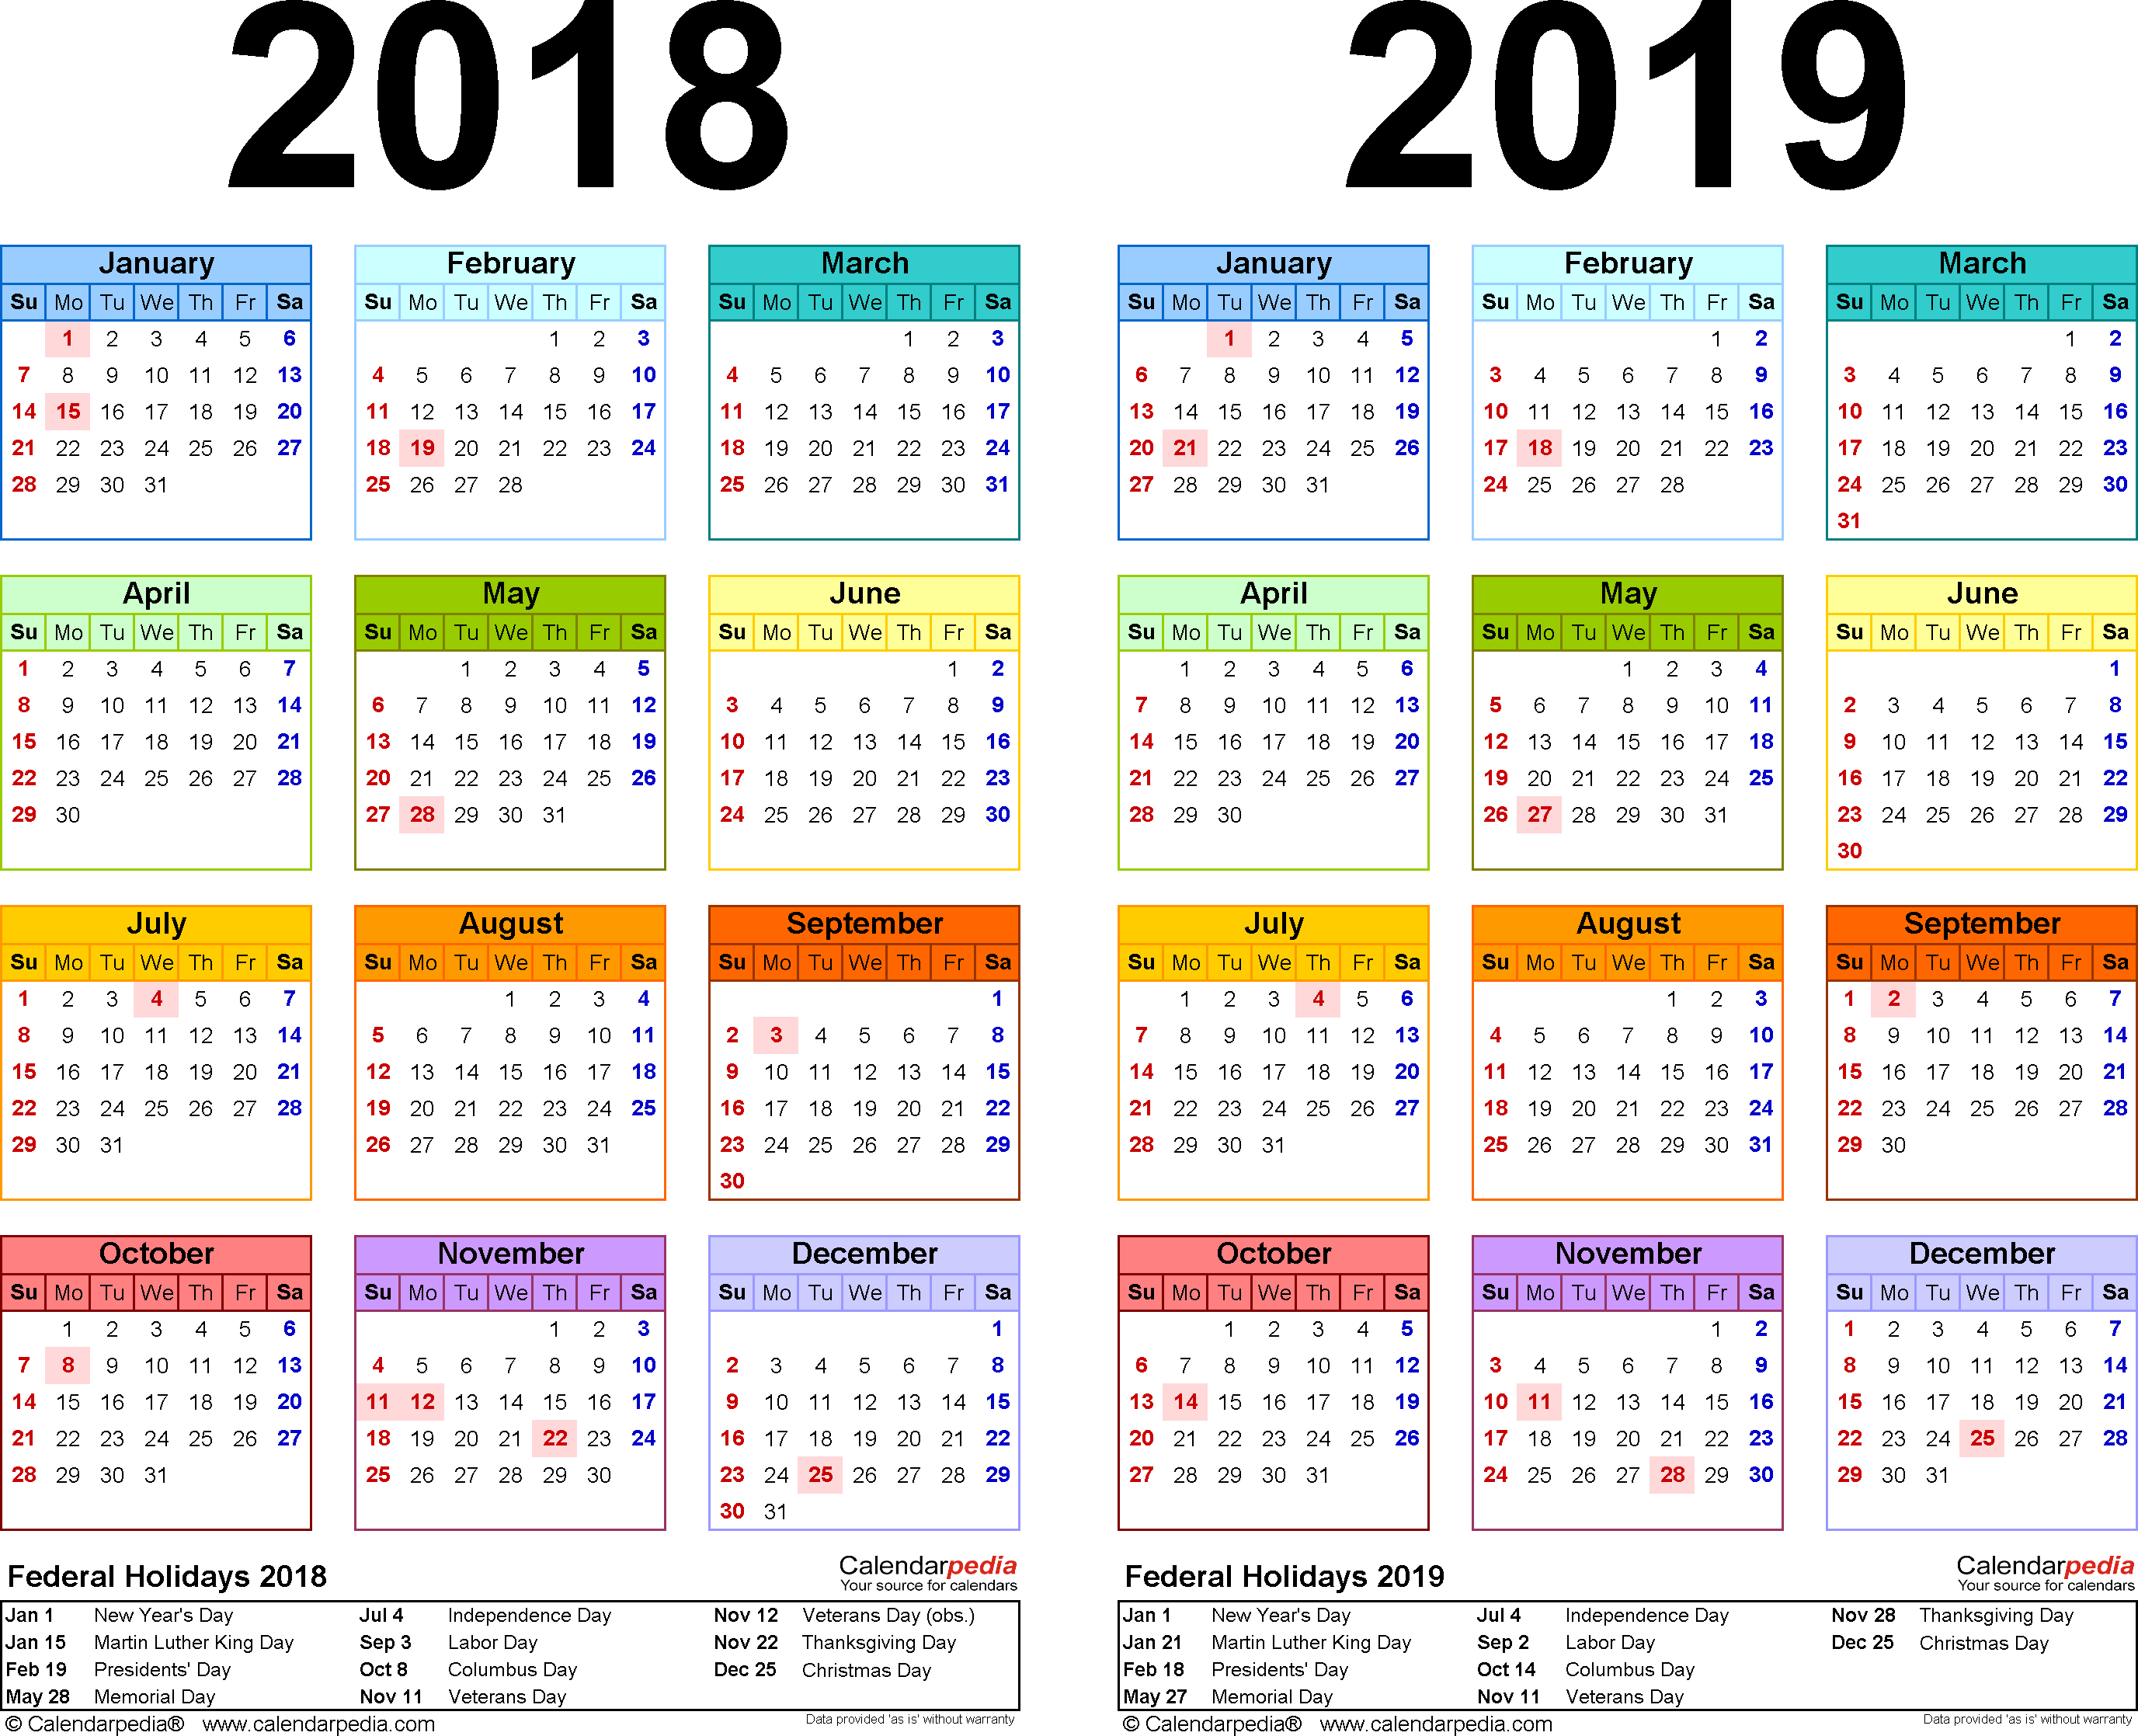 2018-2019 Calendar - Free Printable Two-Year Excel Calendars regarding 2020 Printable Liturgical Calendar Free